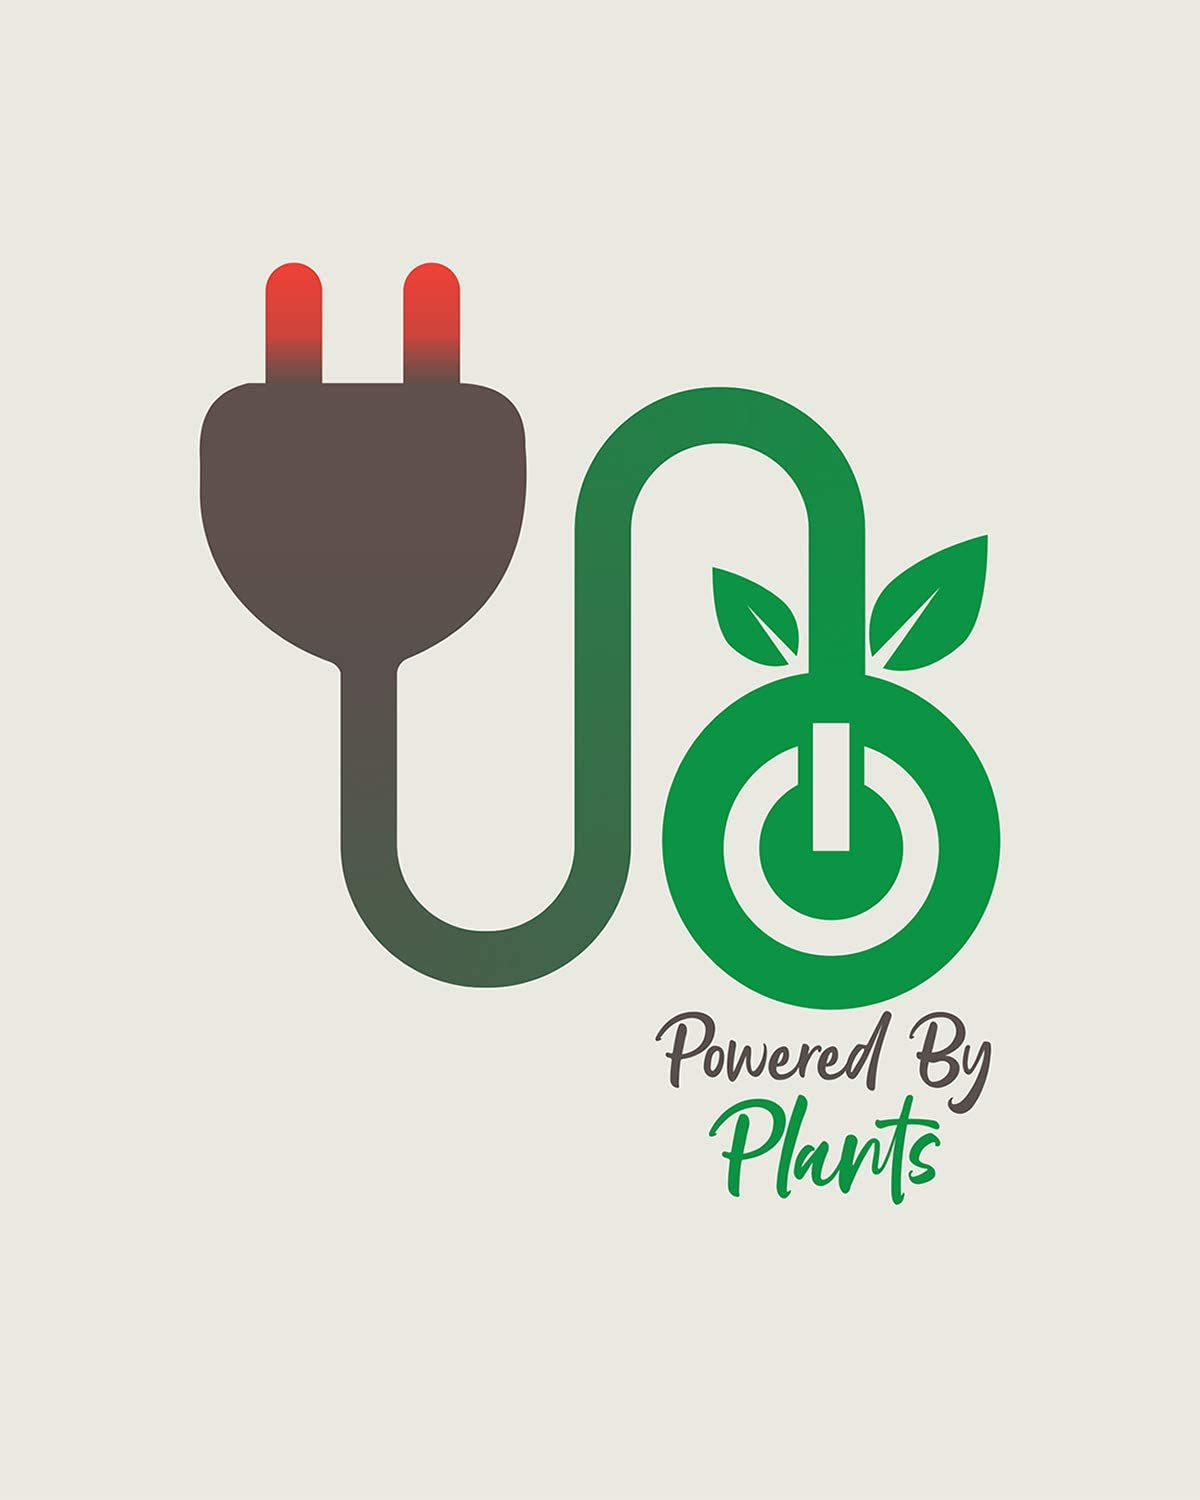 Powered By Plants - 8x10 Unframed Vegan and Vegetarian Pun Wall Decor Art Print on a Grey Background - Great Funny Gift for Vegetarians, Vegans and Plant-Based Eaters